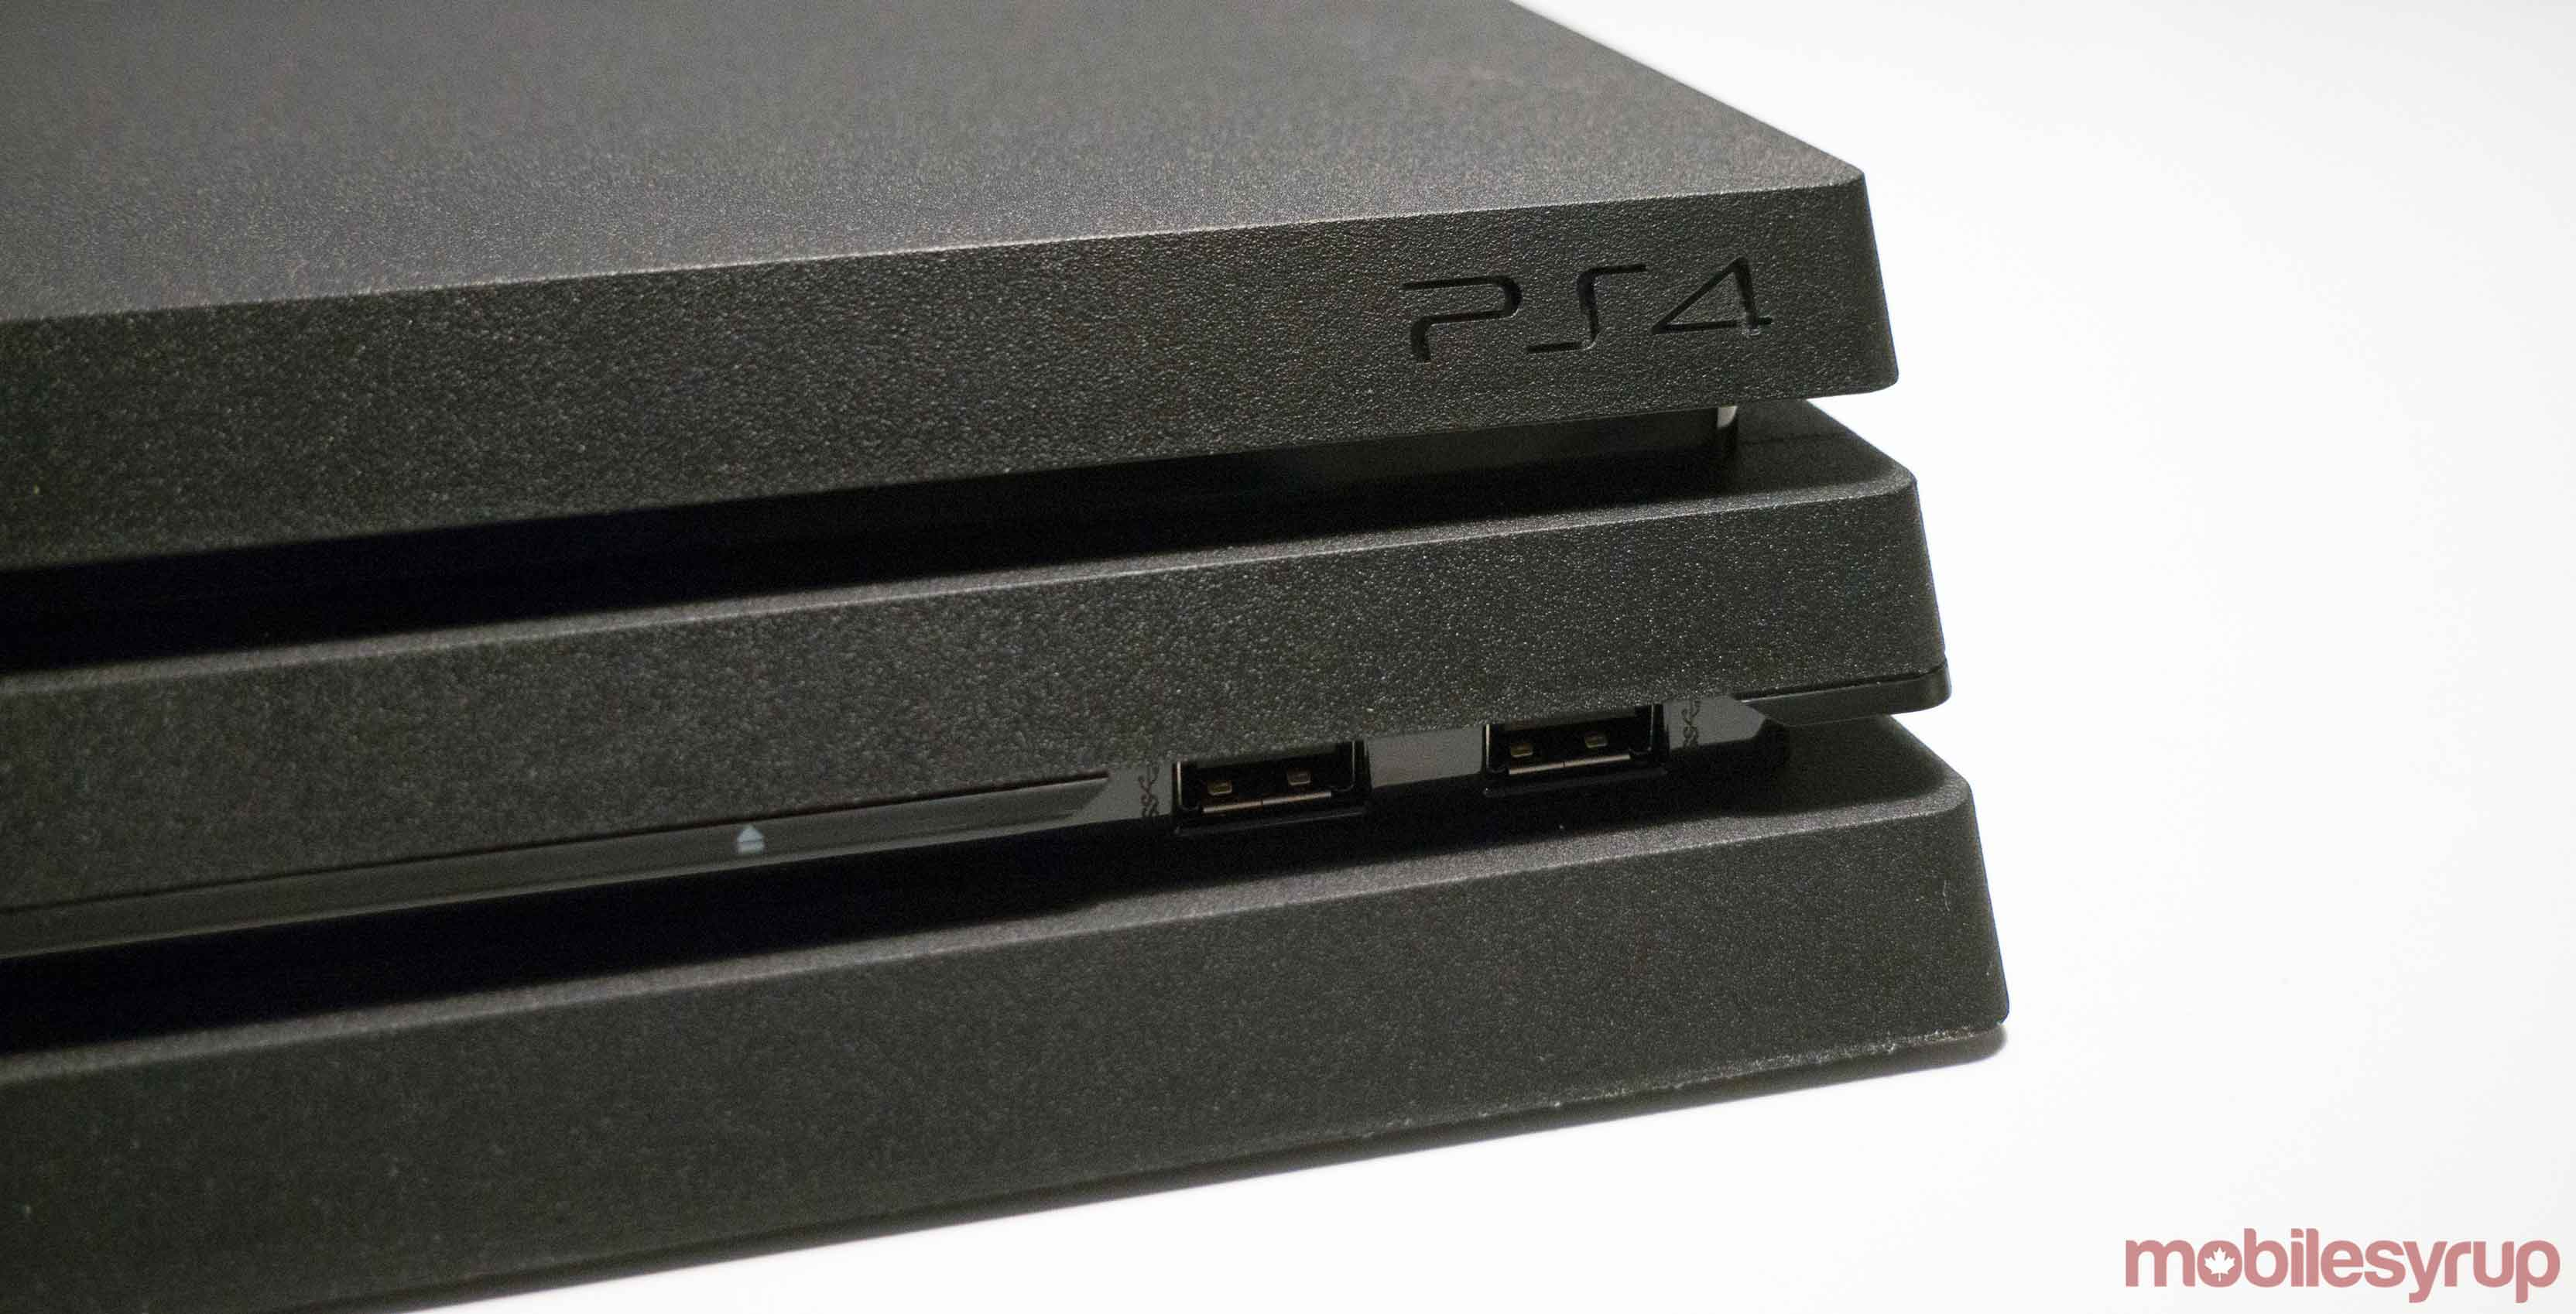 PlayStation 5 would be released no sooner than 2020